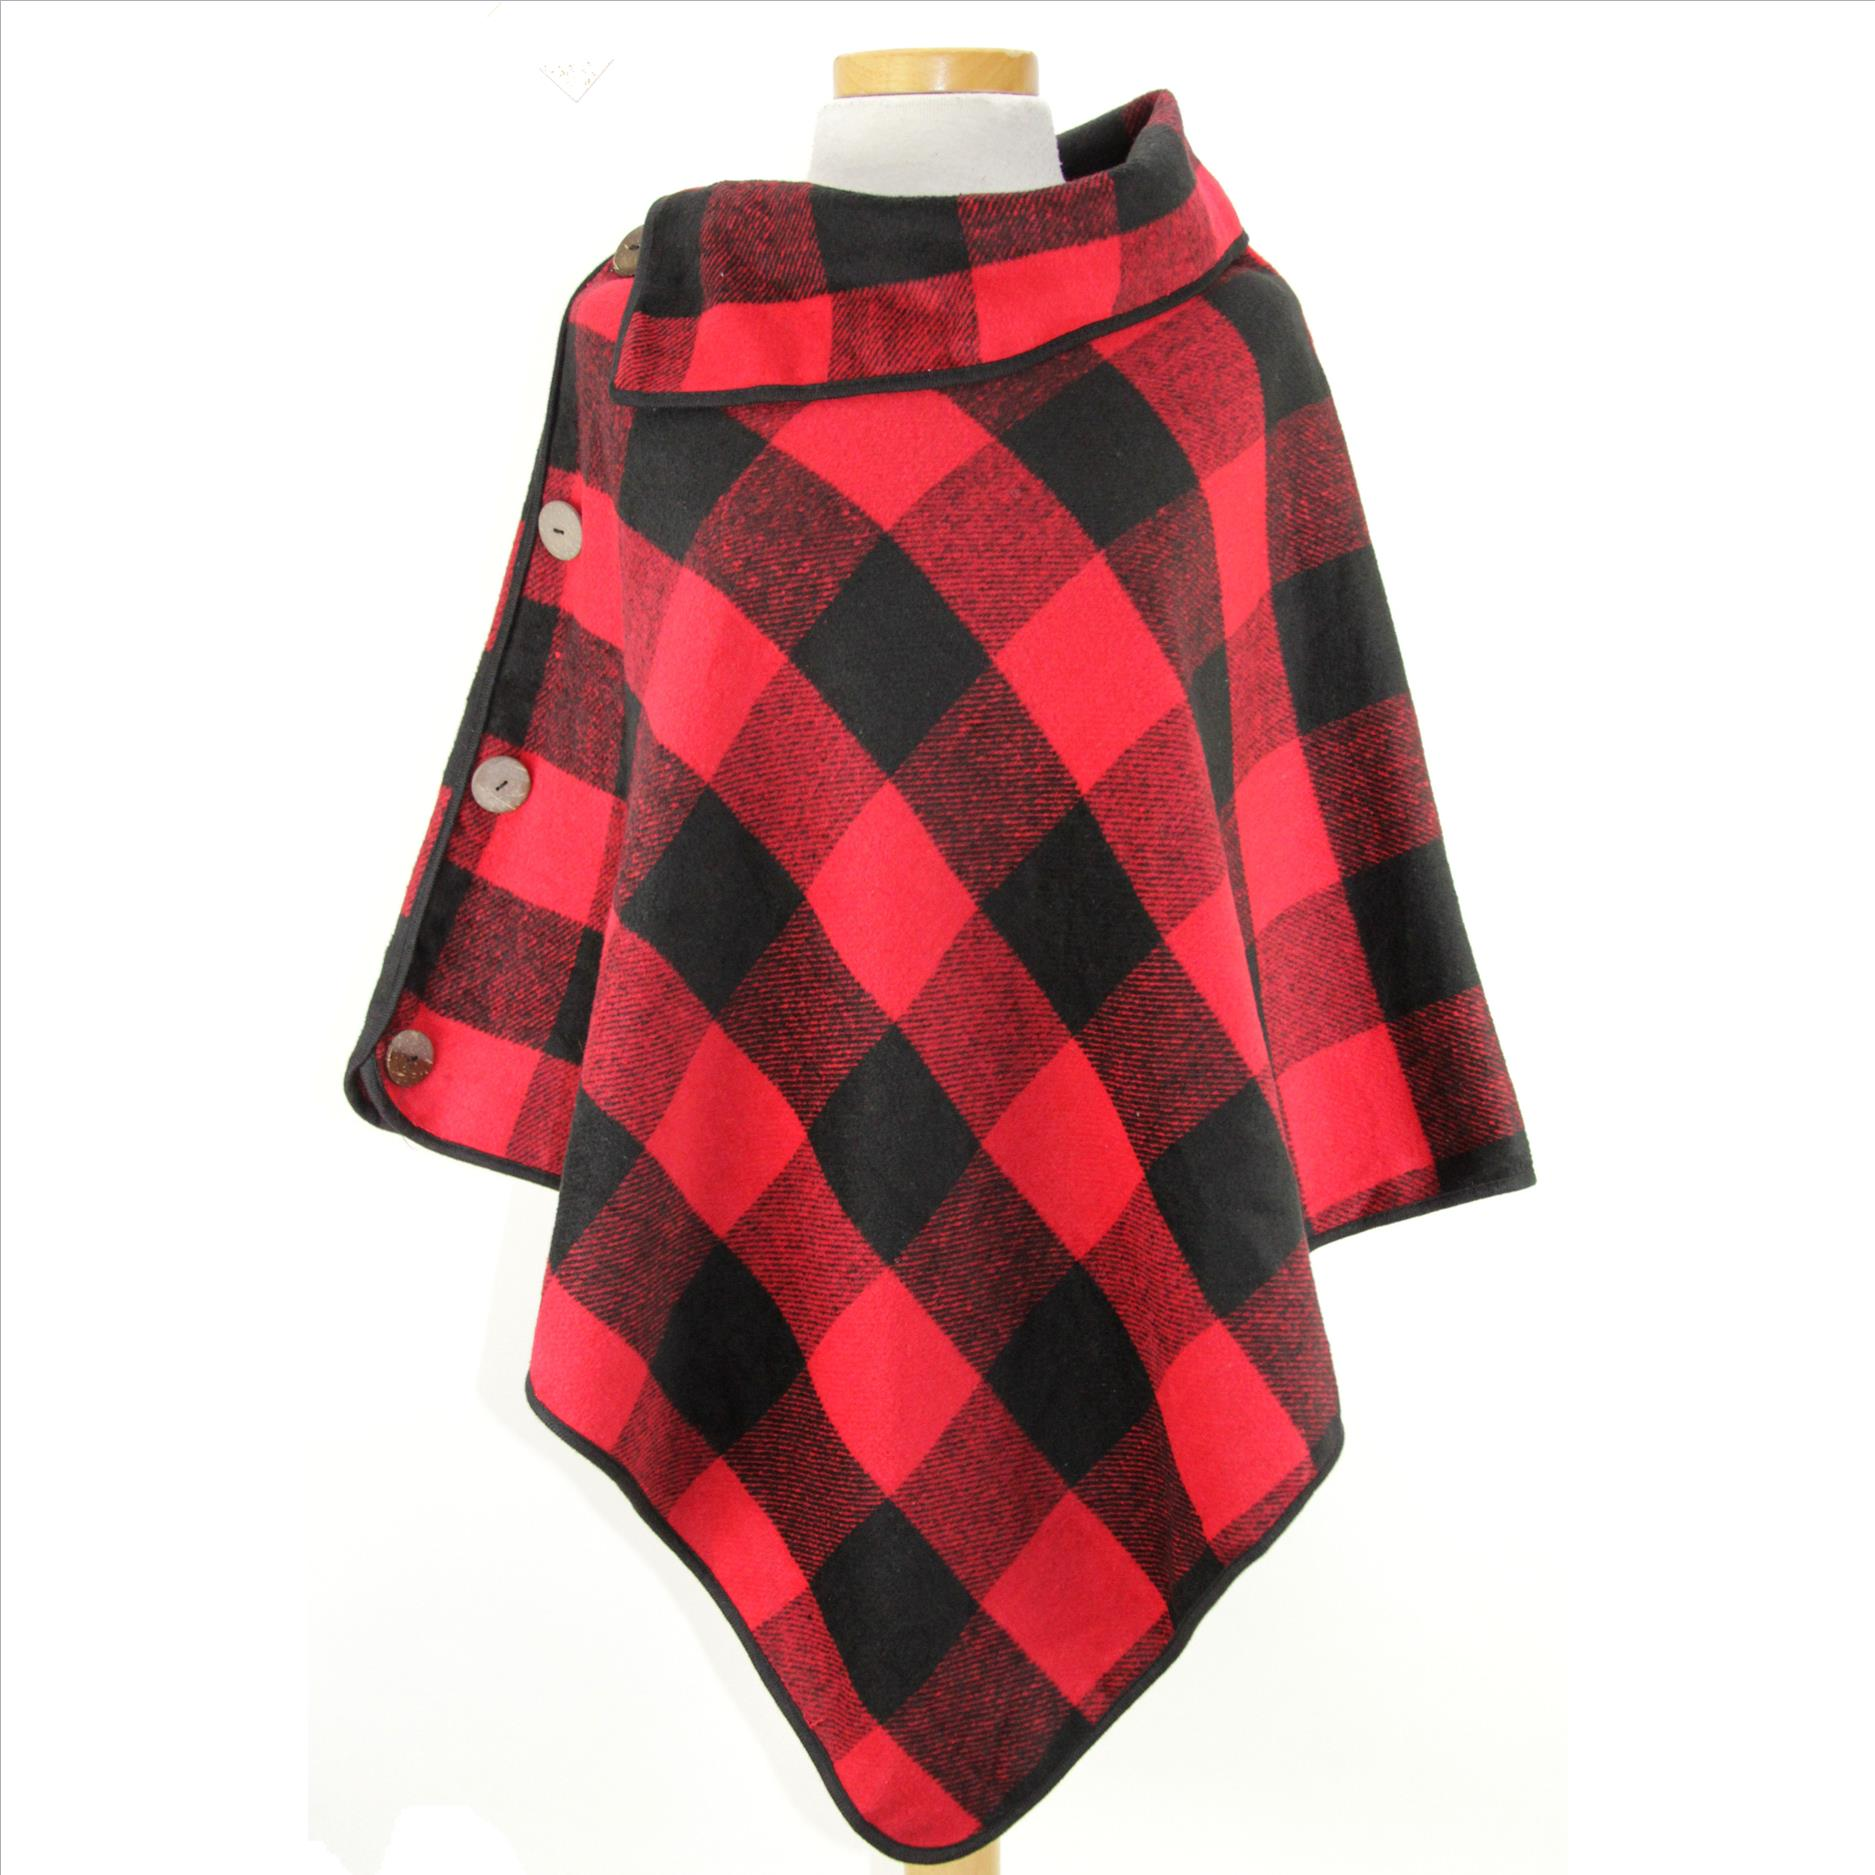 Coconut Button Buffalo Plaid Ponchos - Red / Black